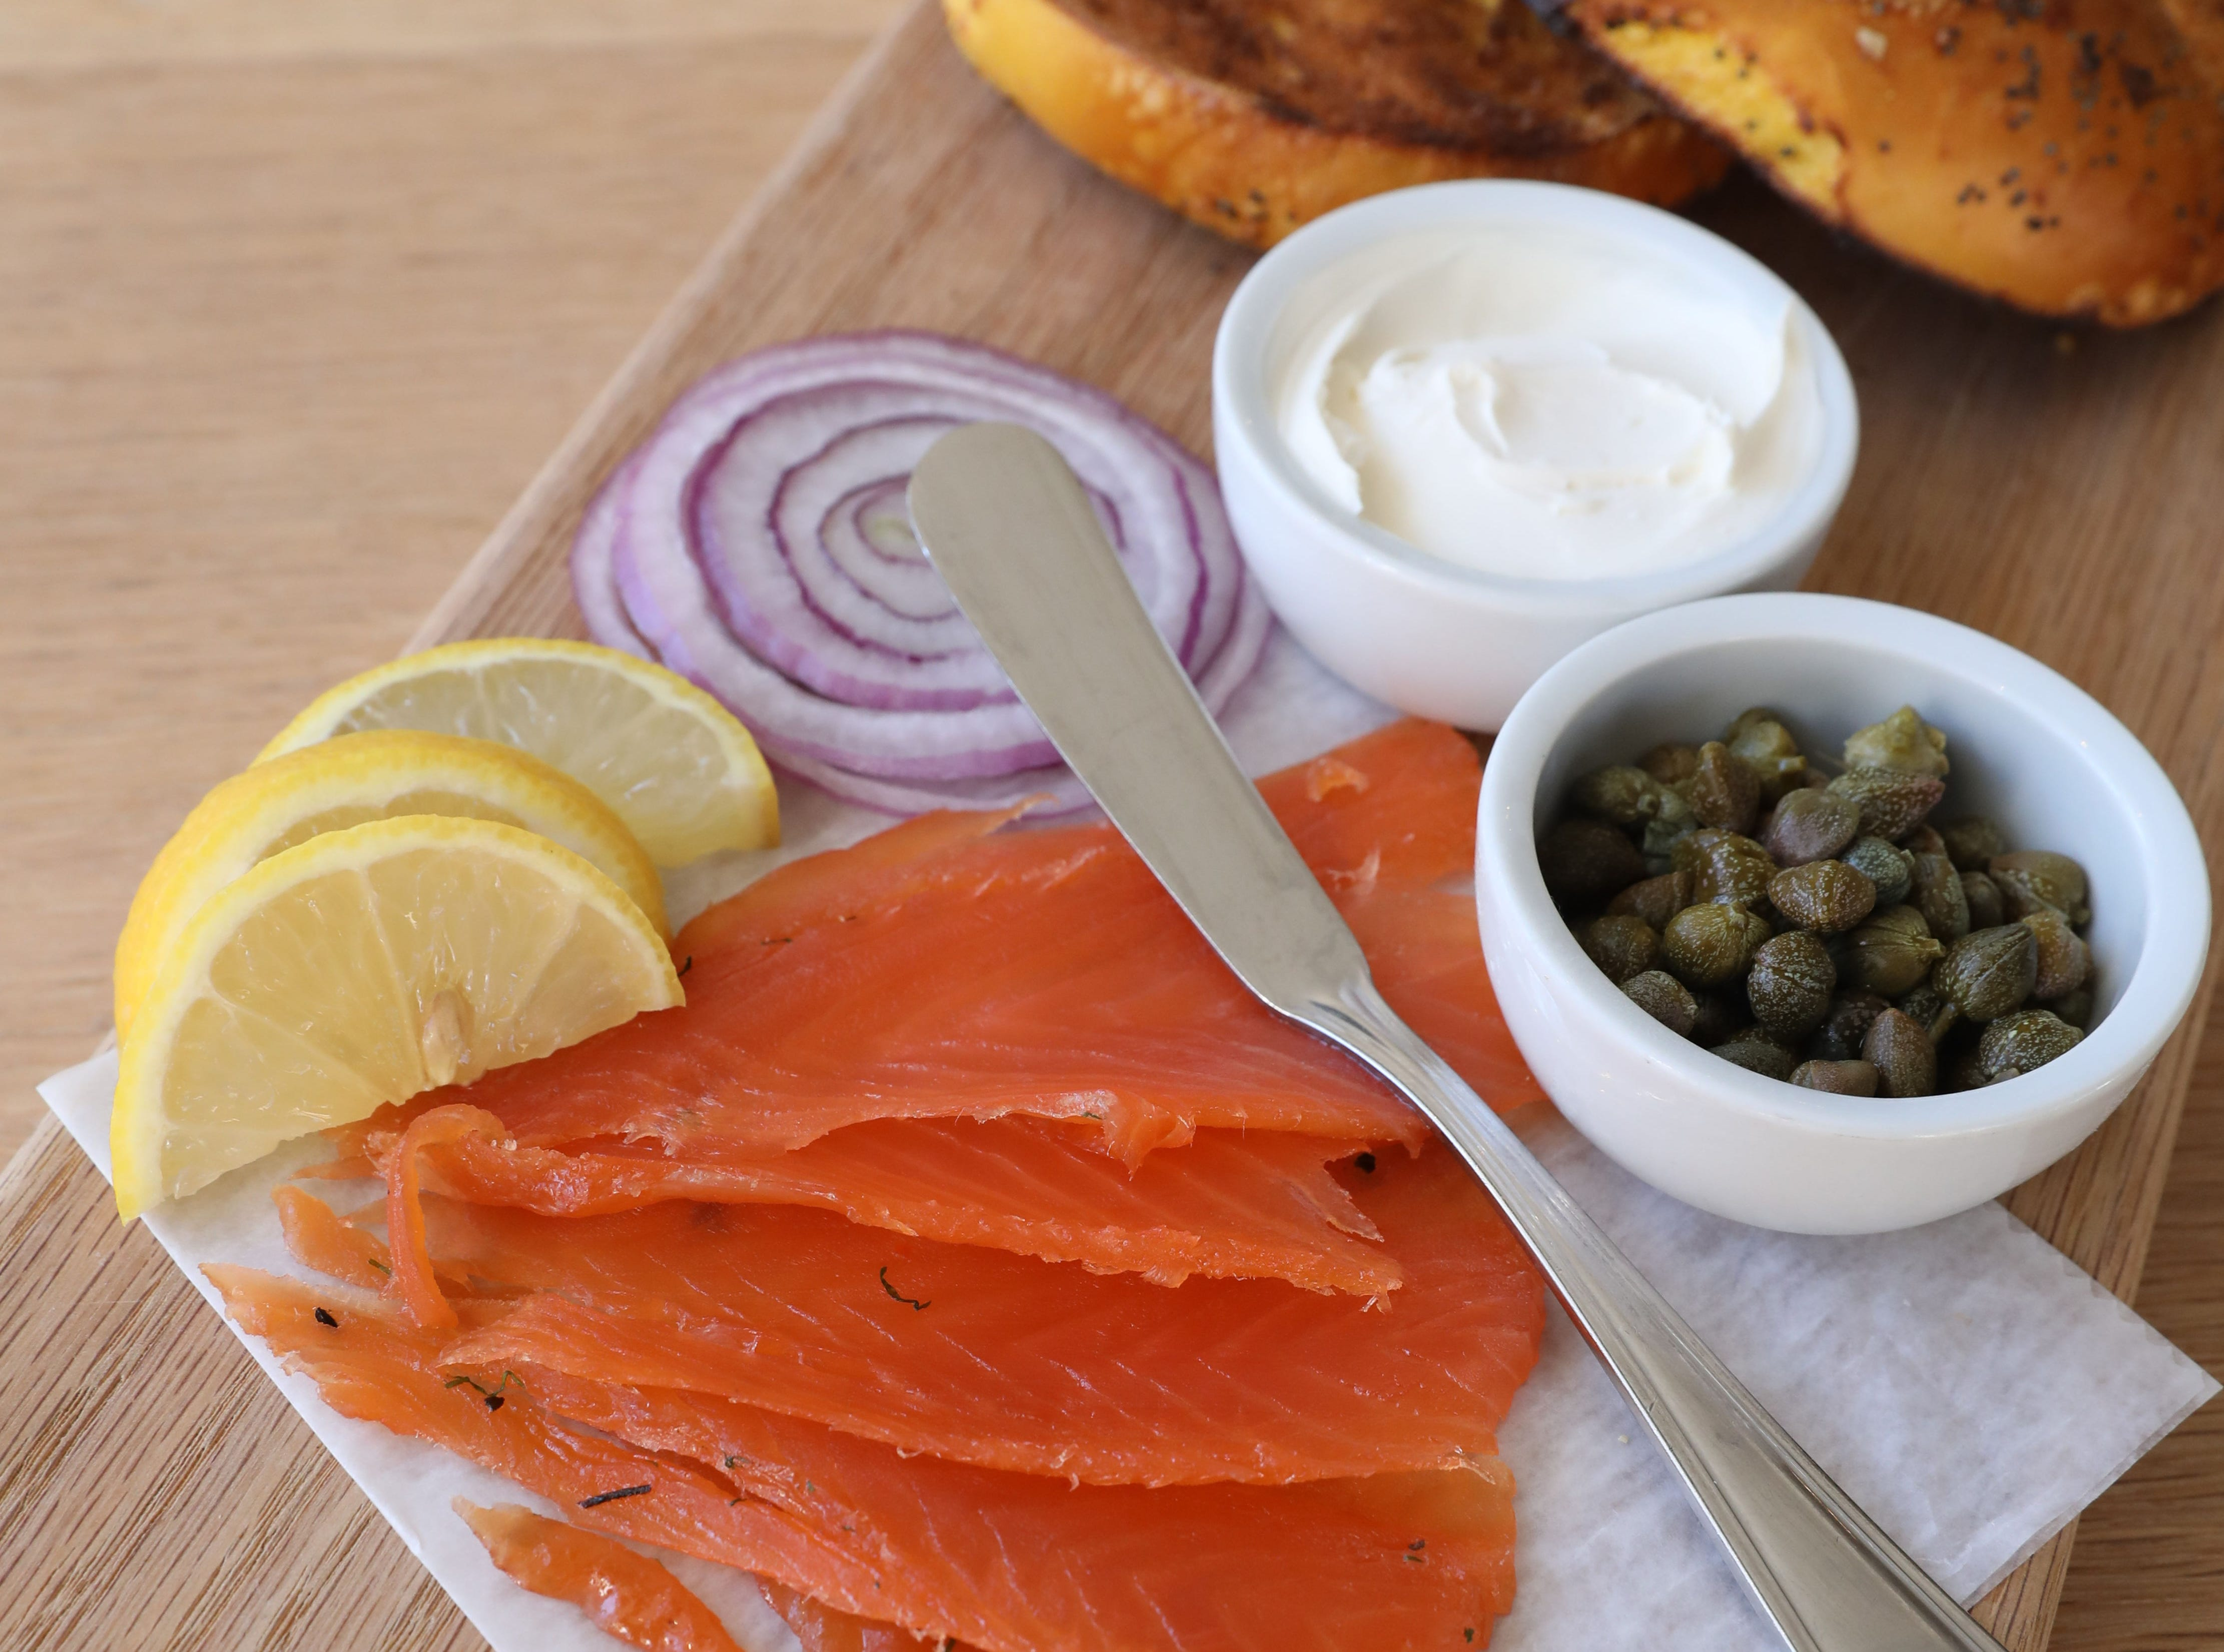 The House-Cured Gravlox platter with capers, red onions, cream cheese and bagel at Boro 6 Wine Bar in Hastings-on-Hudson, Jan. 11, 2019.